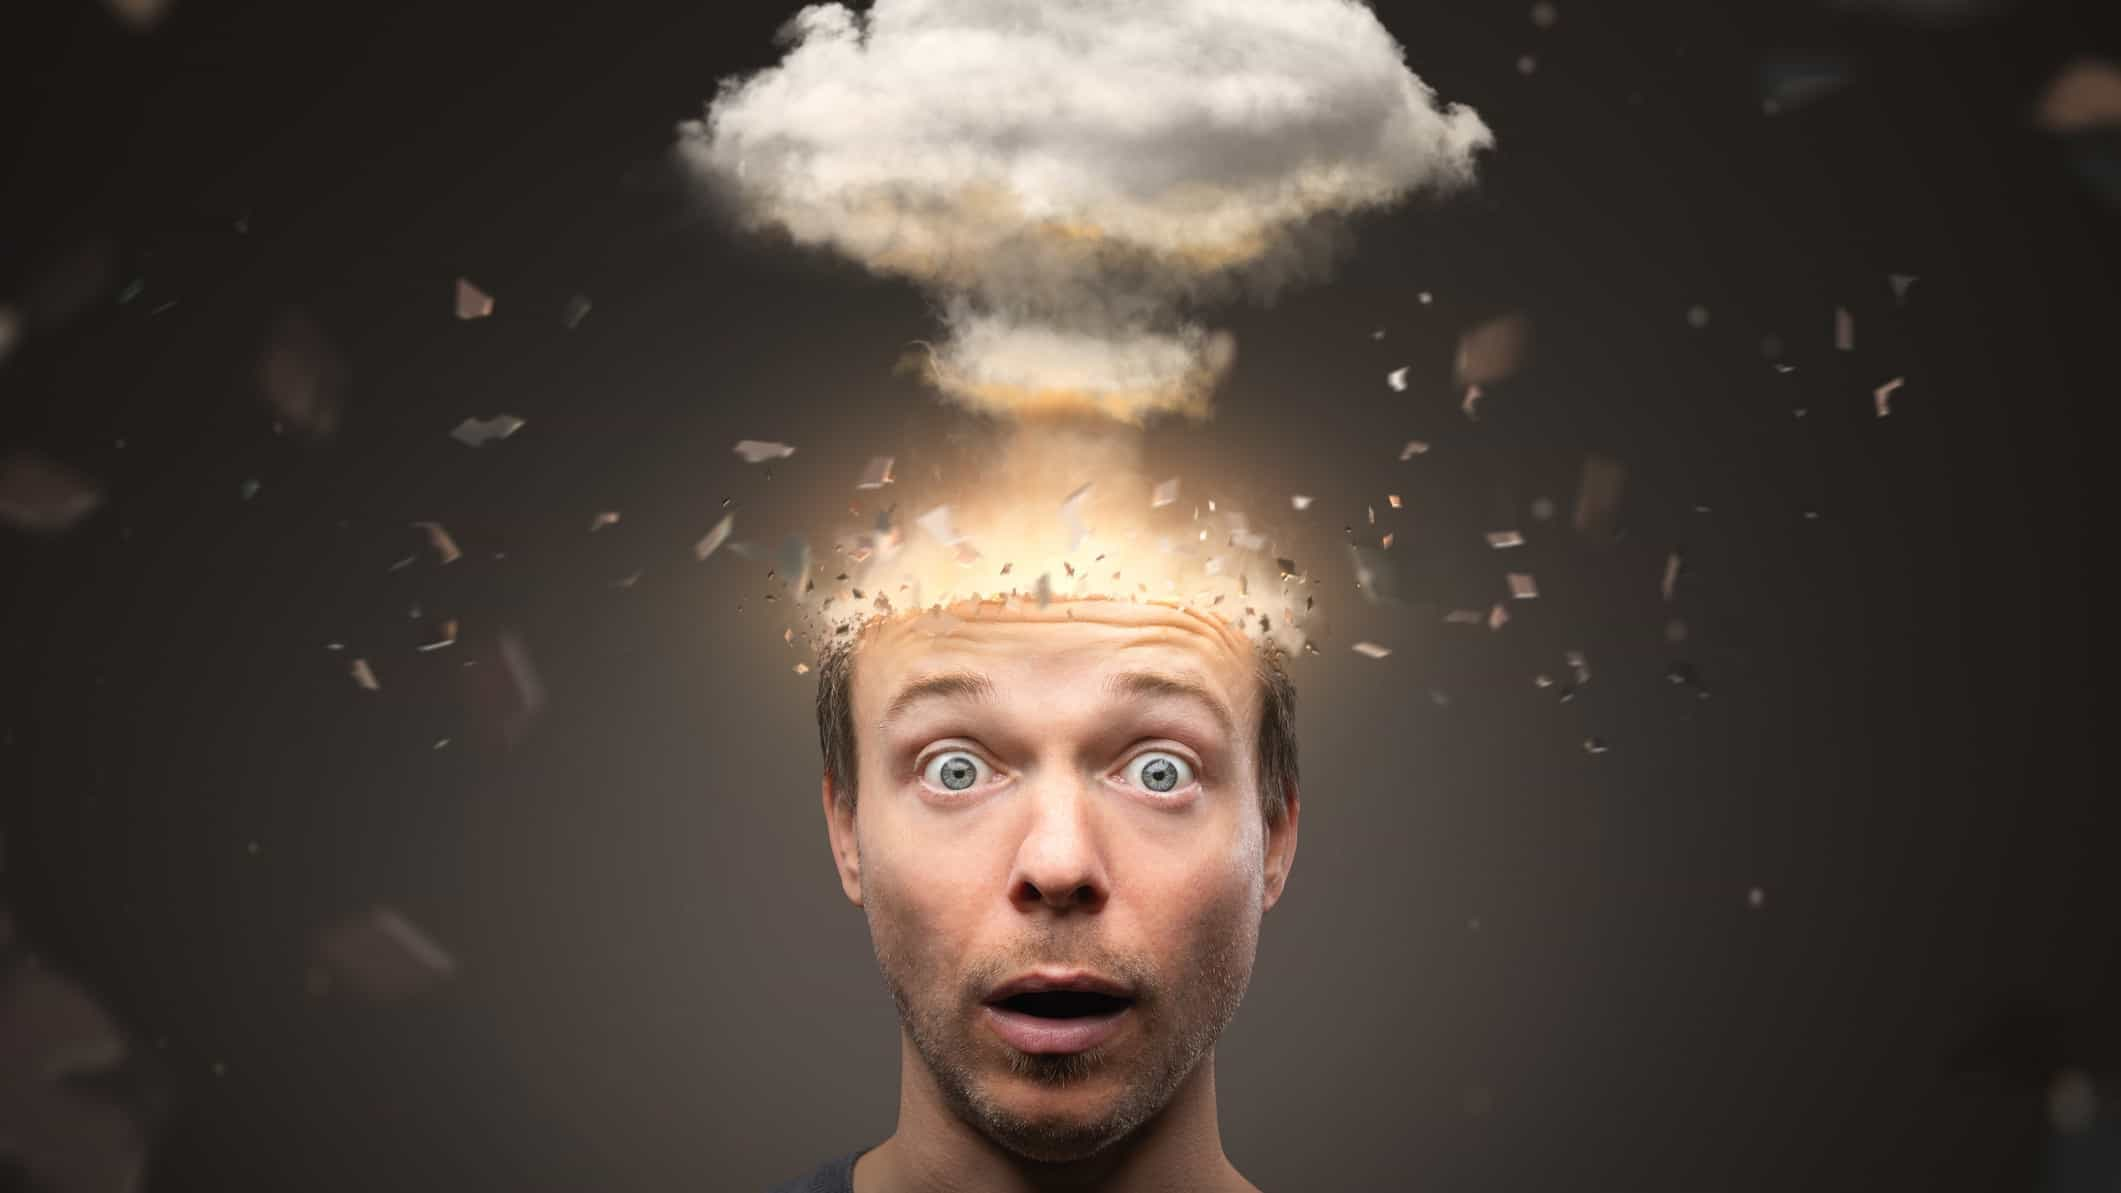 exploding asx share price represented by cloud coming out of man's brain